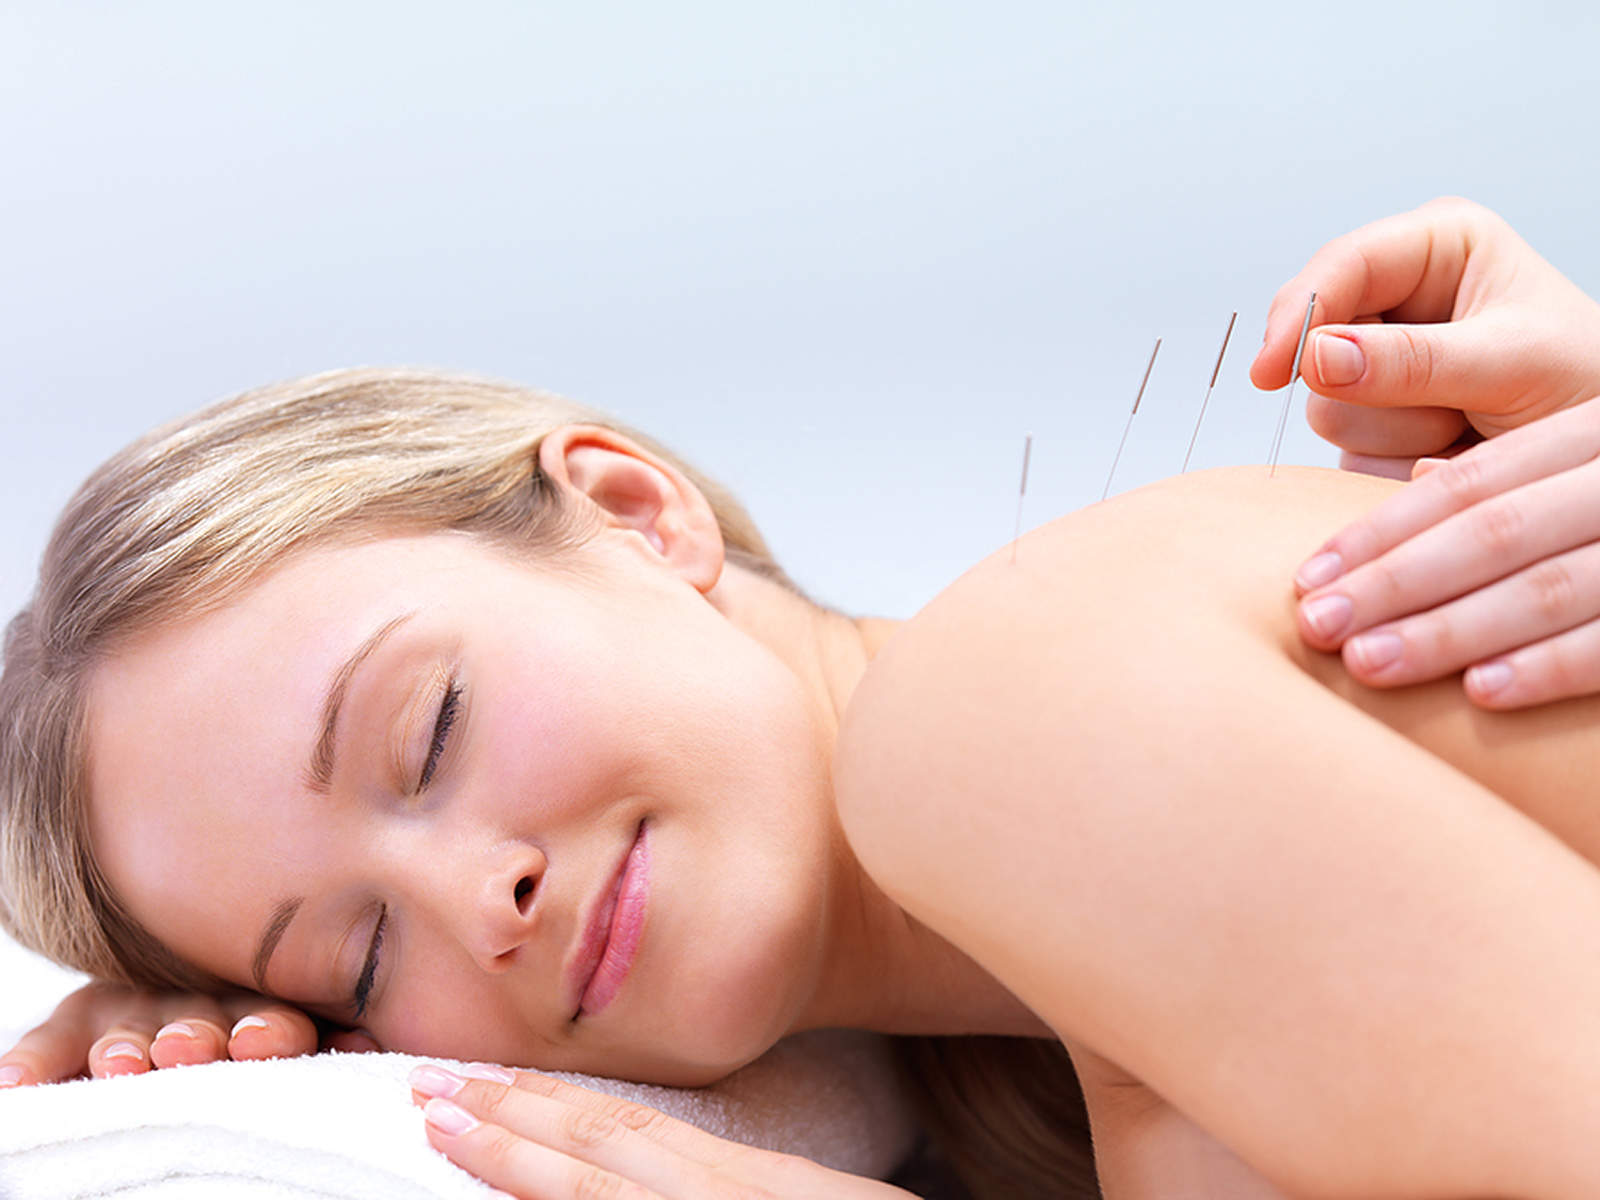 Woman getting dry needling